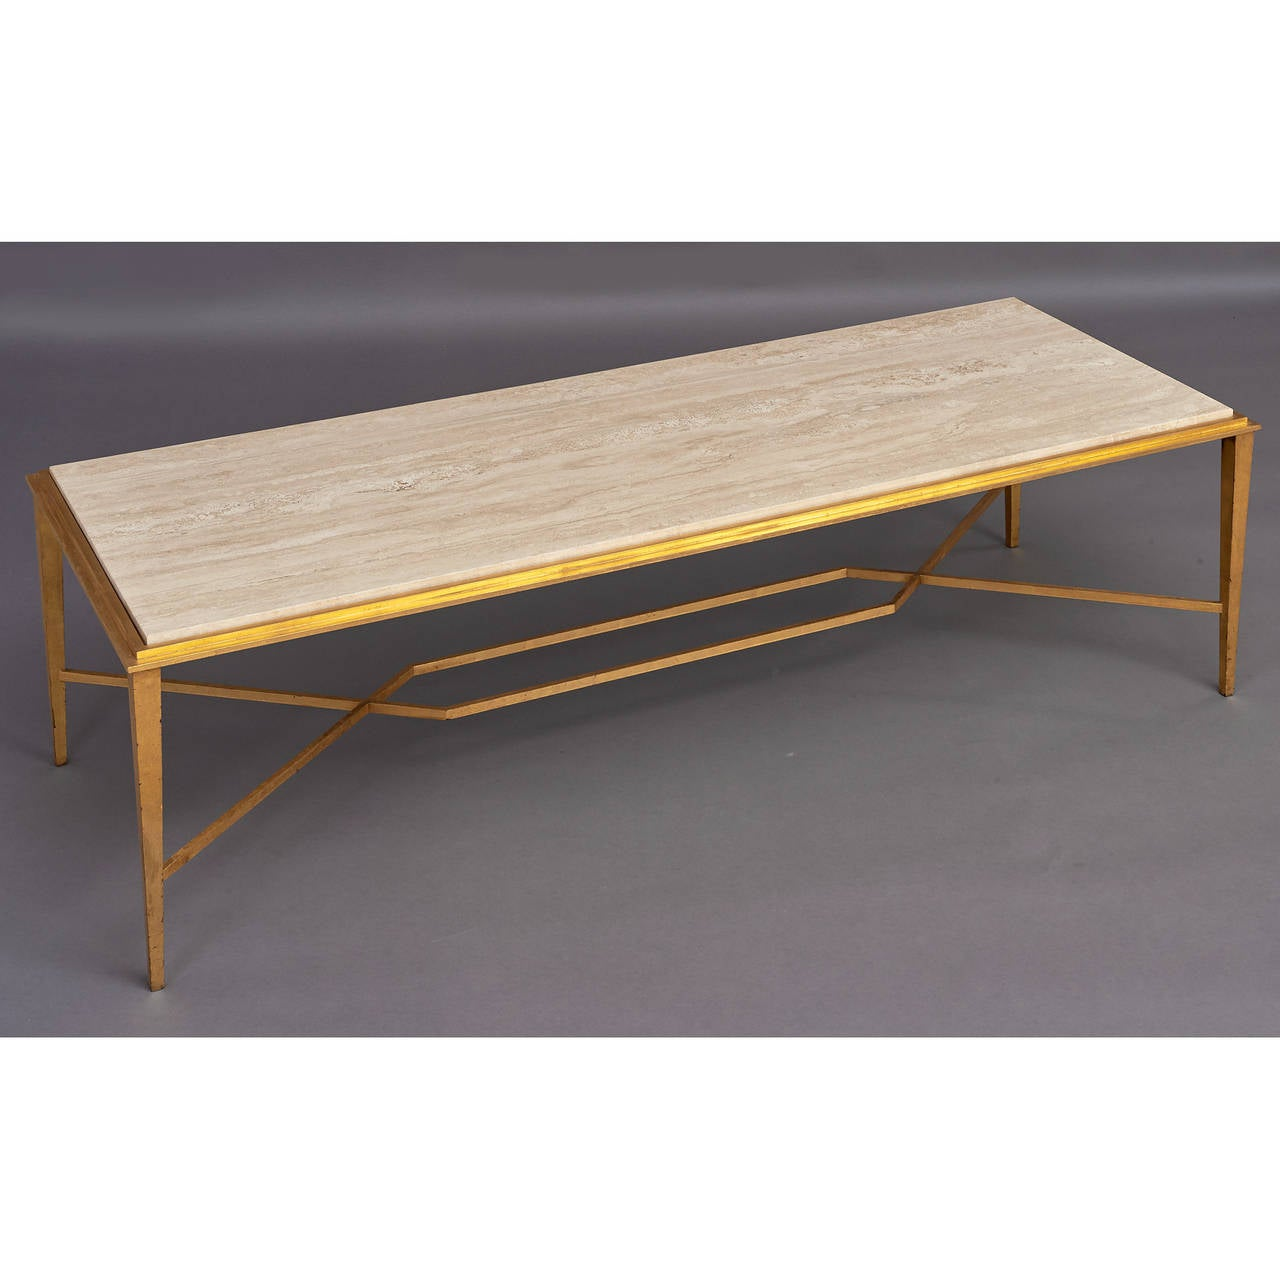 Mid-Century Modern Important Modernist 1950s Gilt Wrought Iron Table by Ramsay For Sale